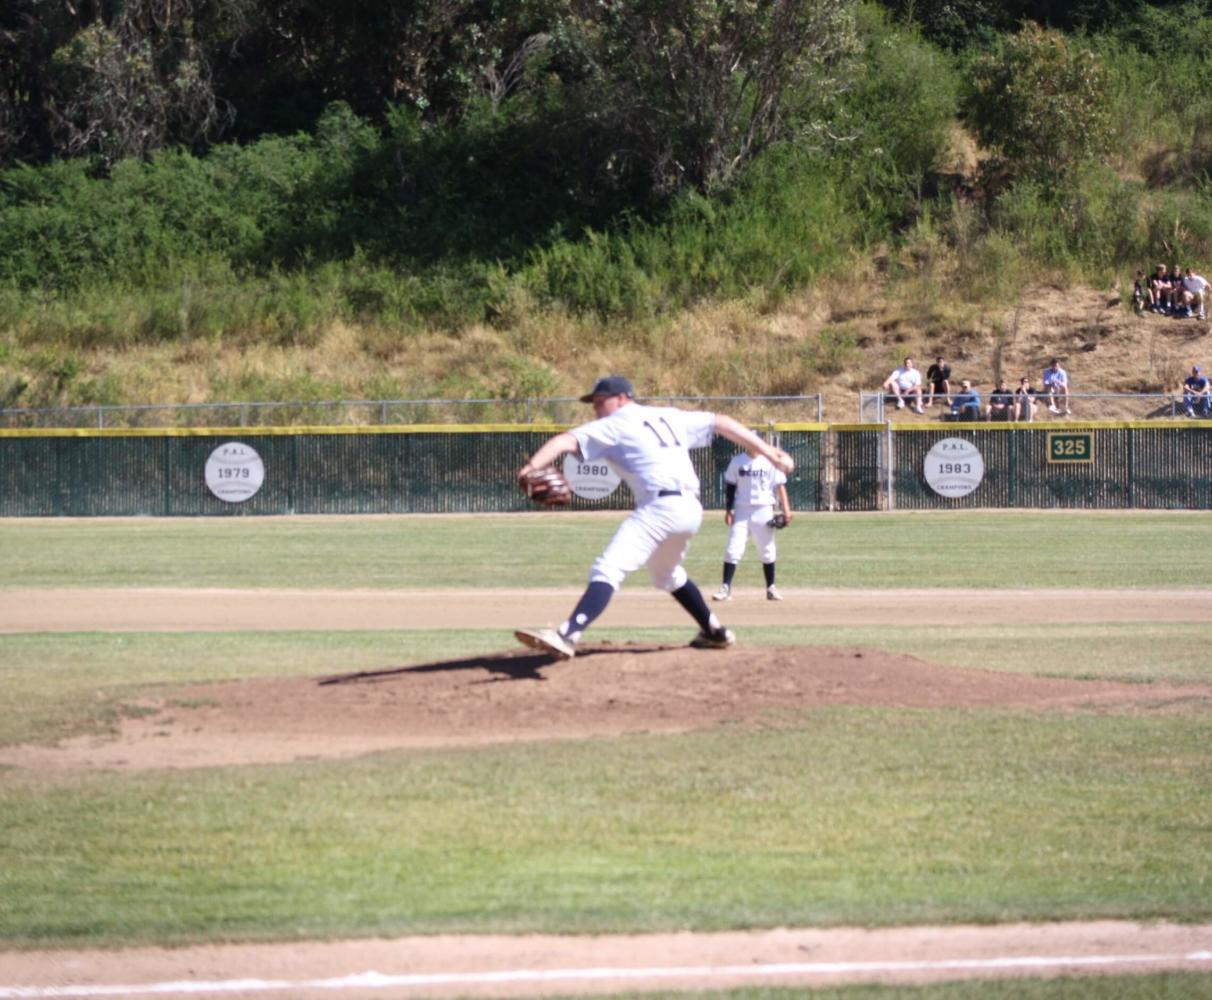 Sean Propel pitches the ball against the Serra Padres.